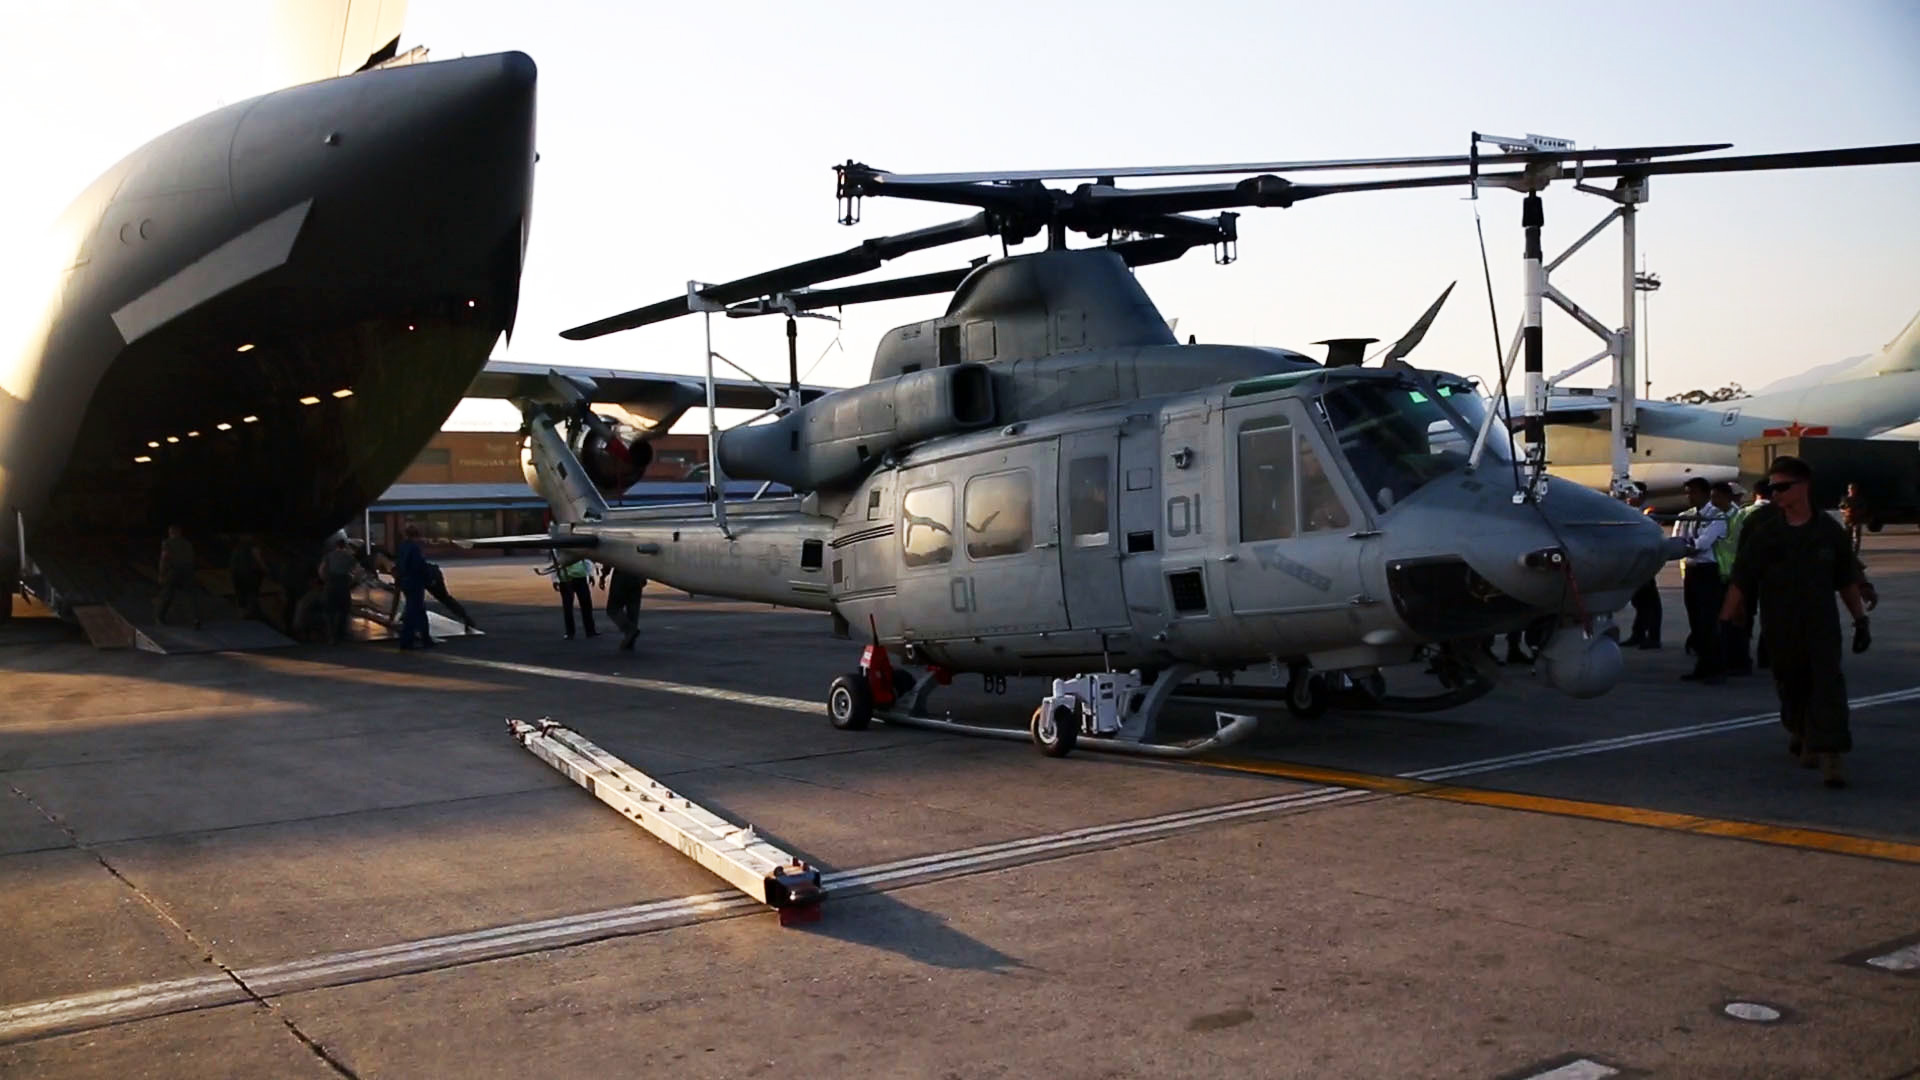 U.S. rescue helicopter missing in Nepal